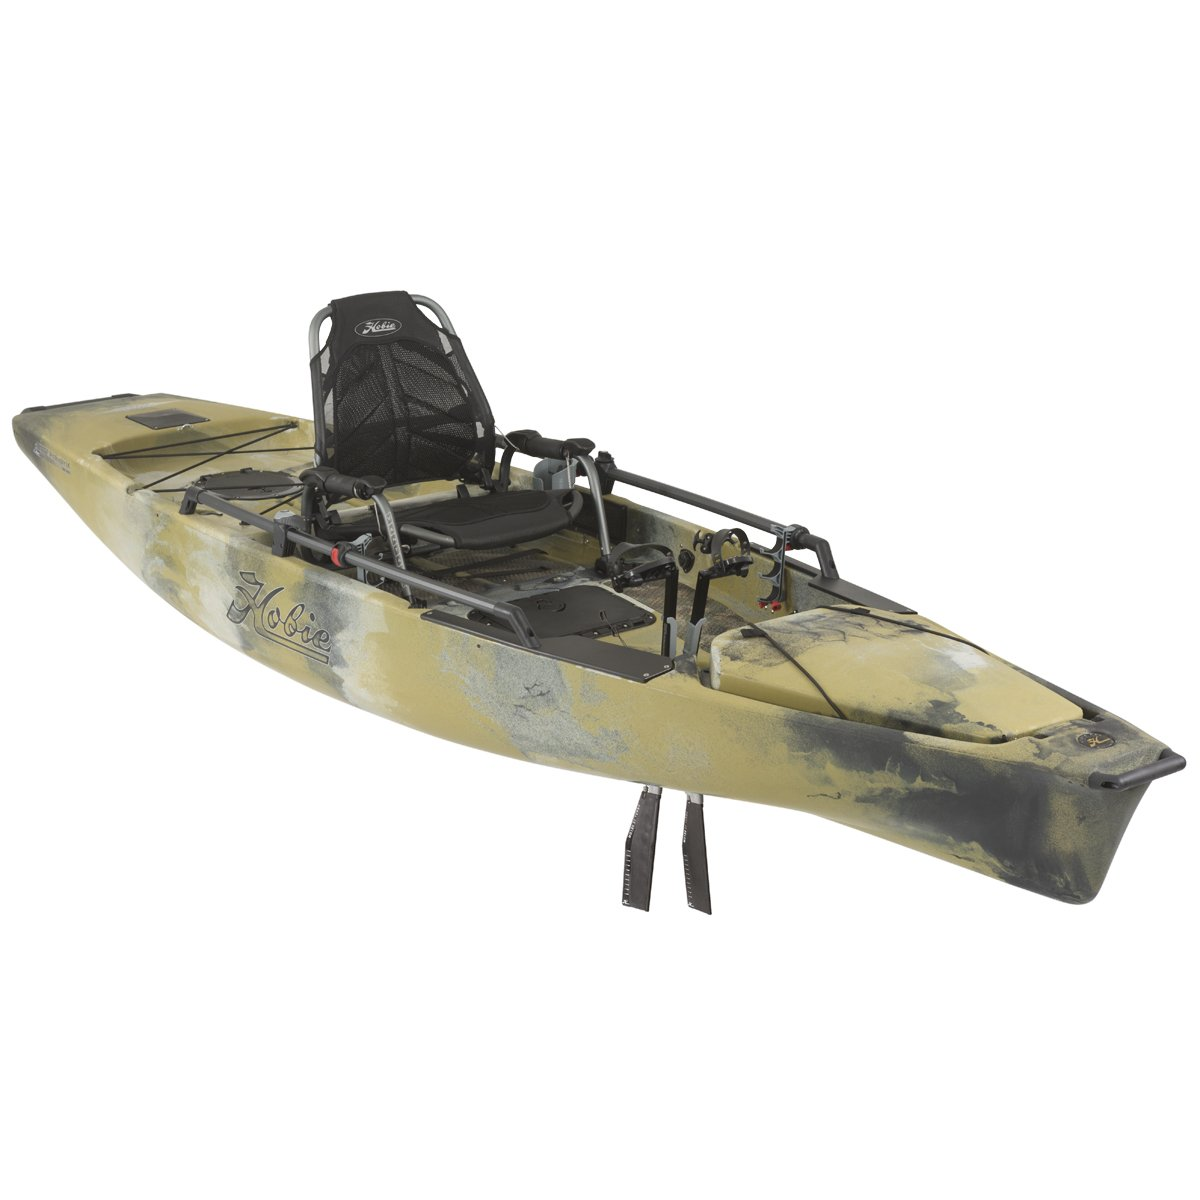 Amazon.com: Hobie Mirage 180 Pro Angler 14 Kayak Camo ...